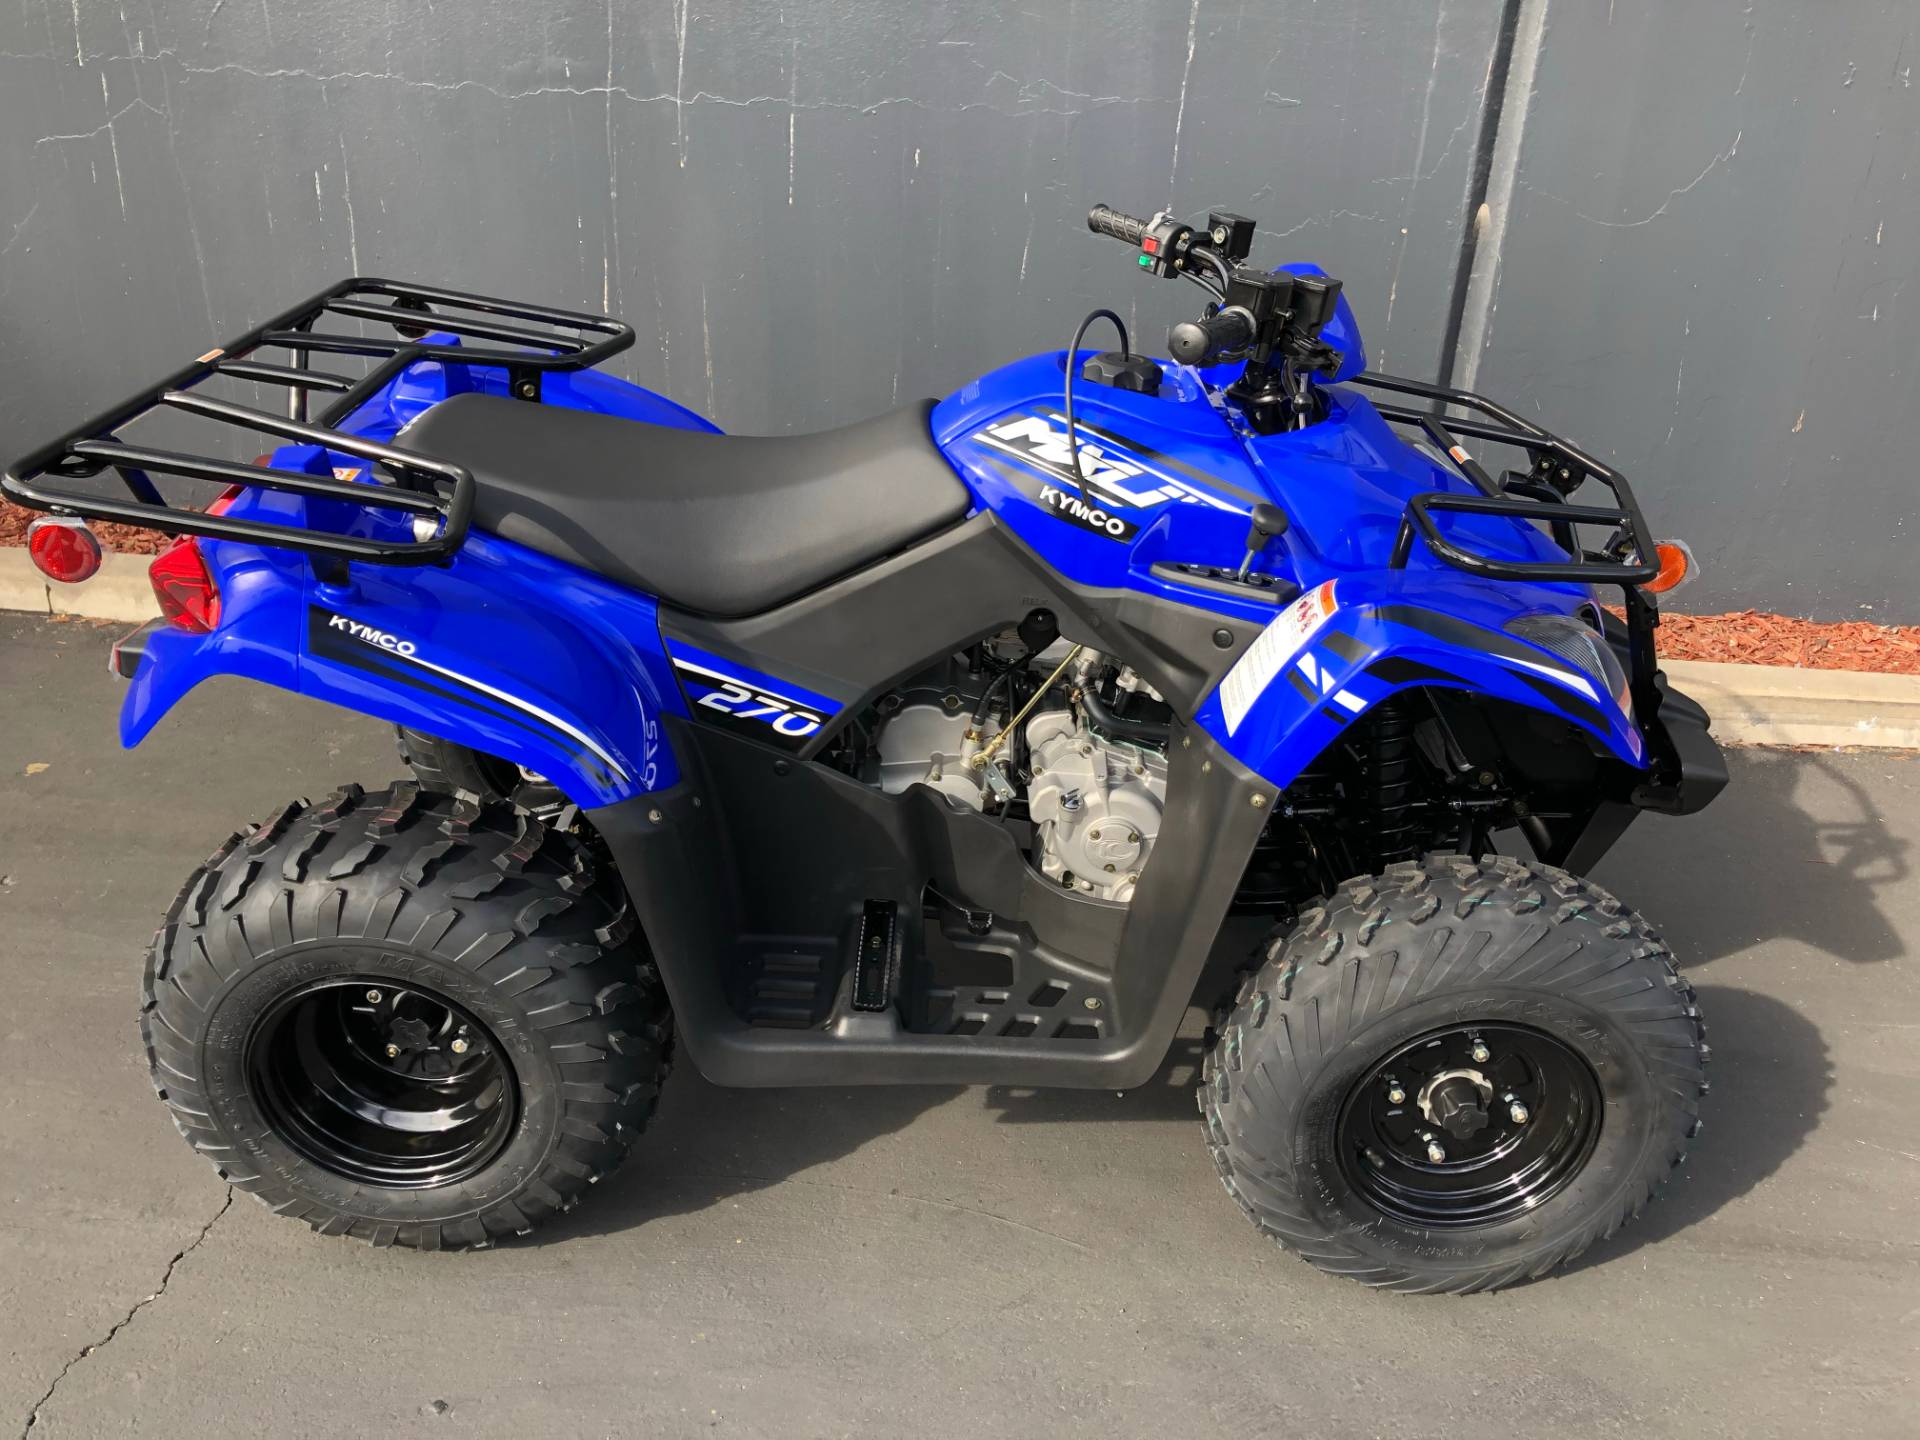 2019 Kymco MXU270 in Chula Vista, California - Photo 1